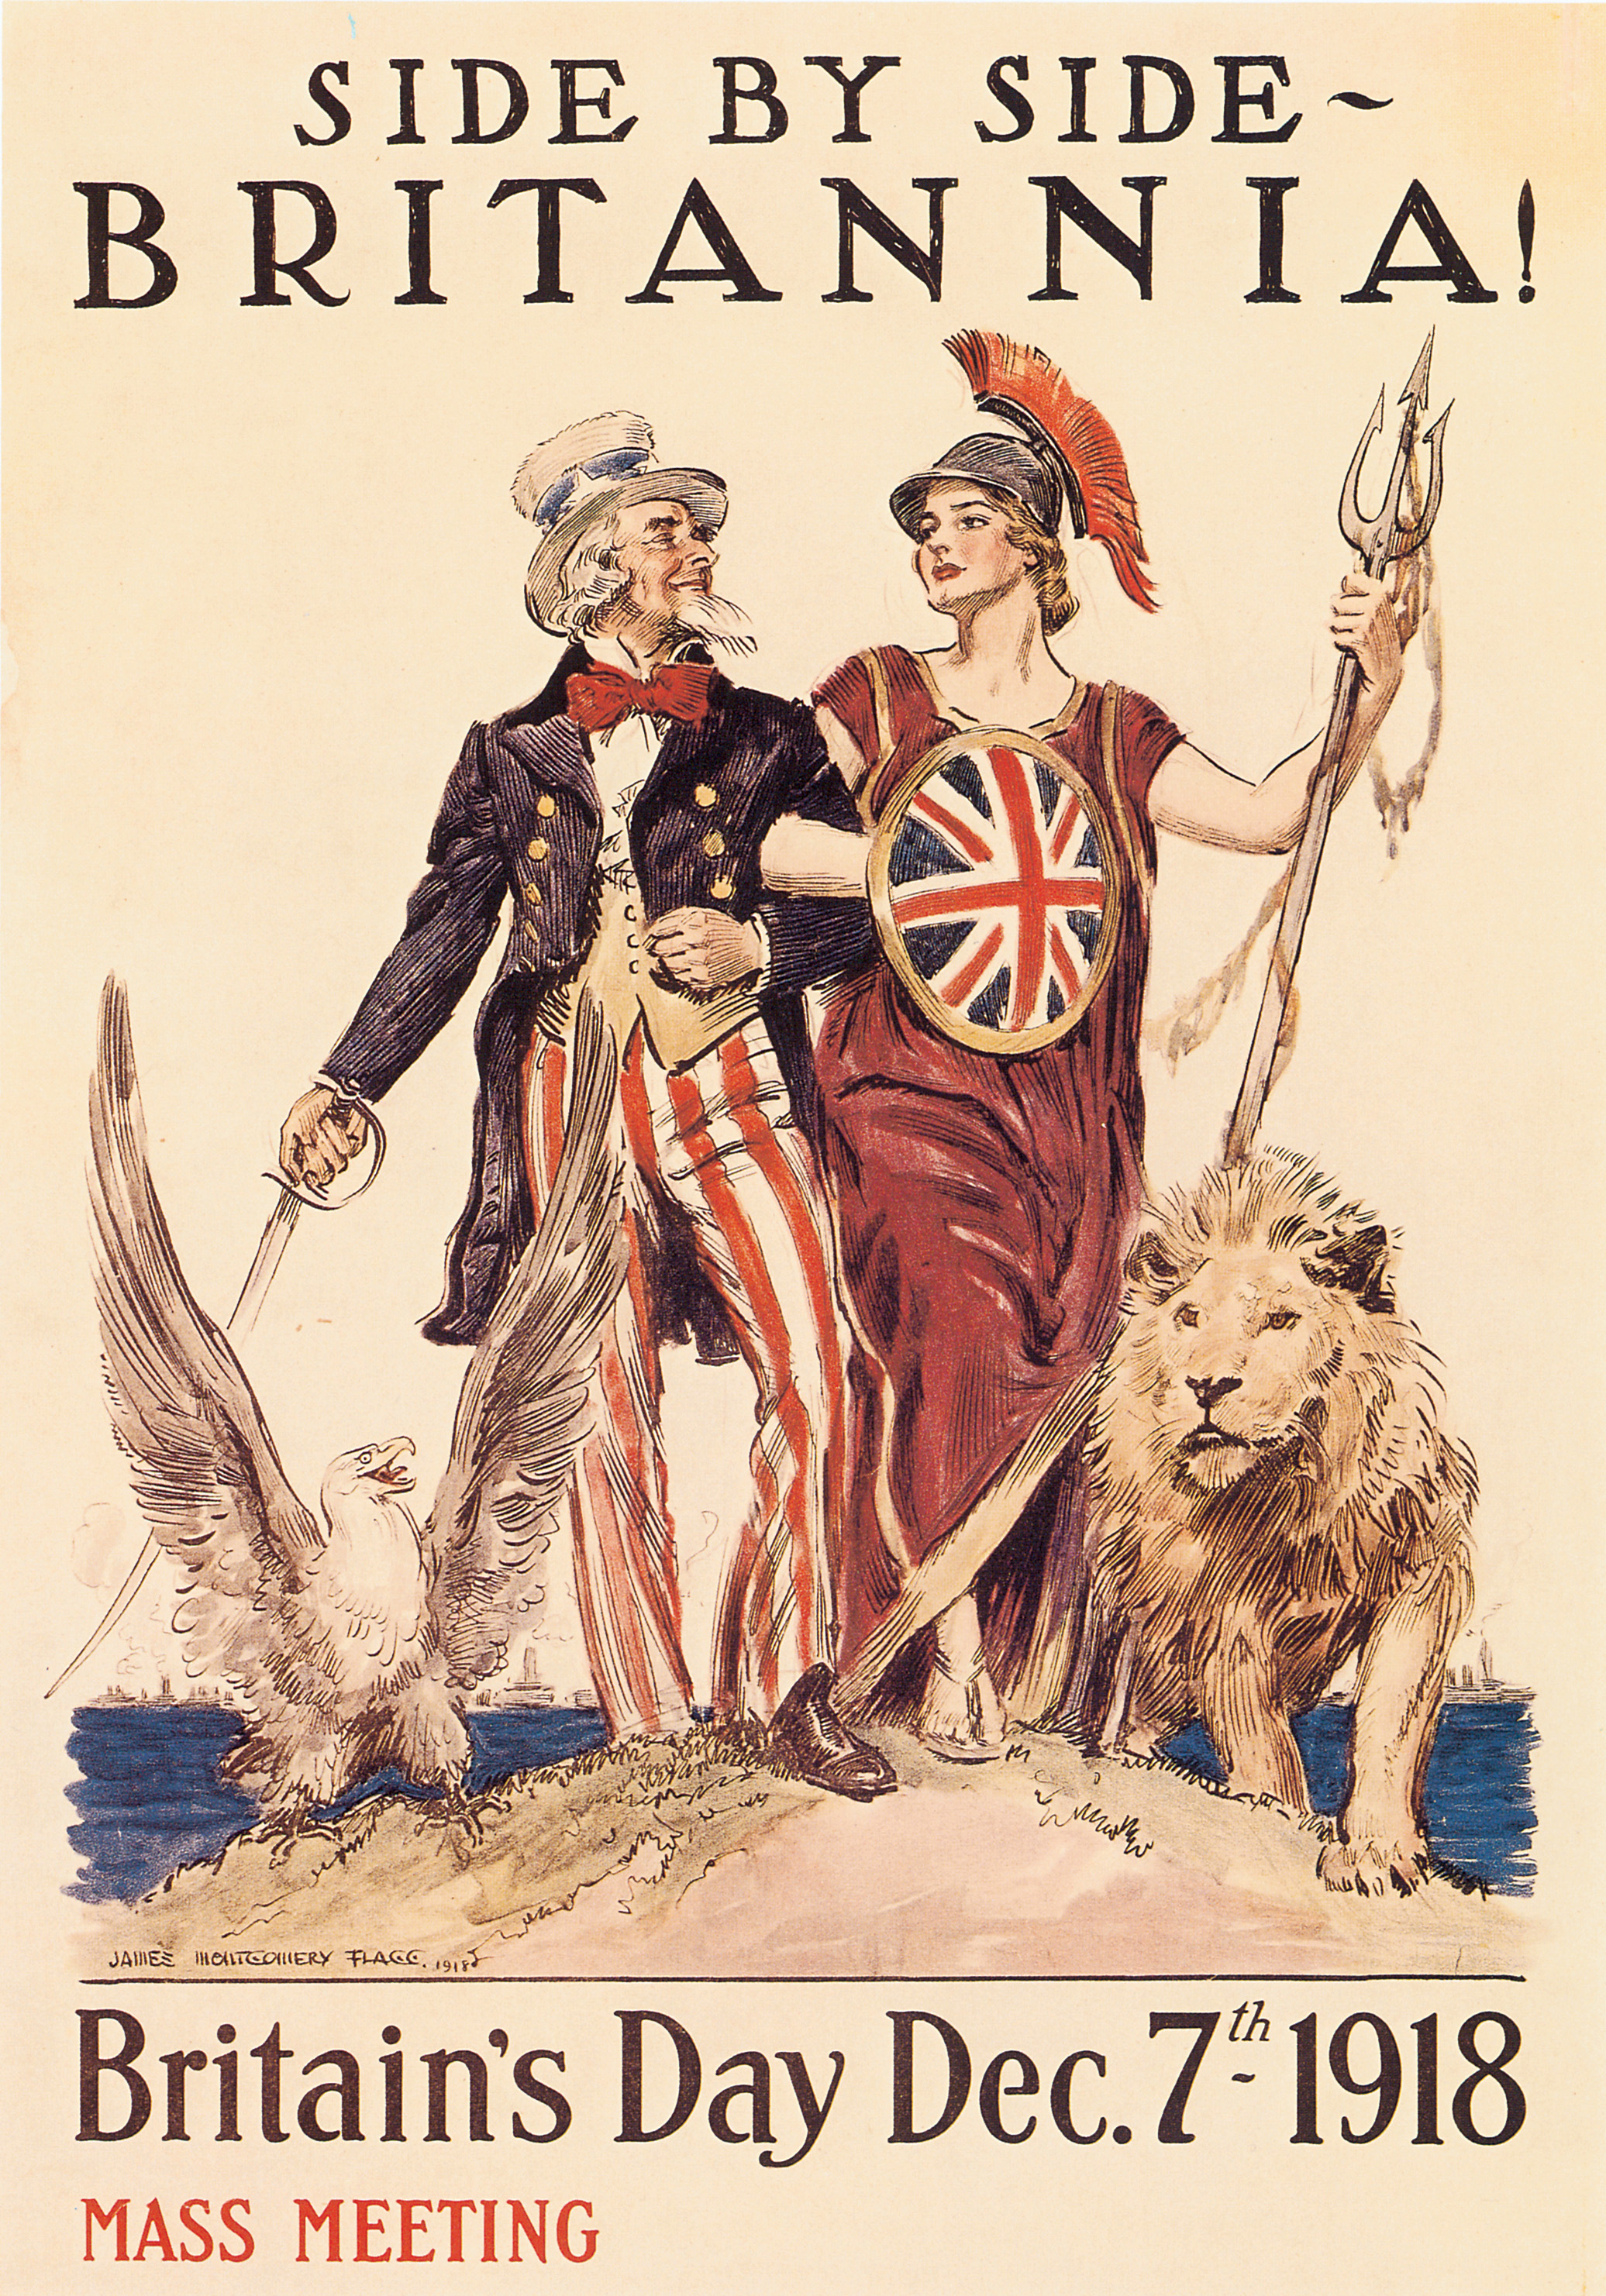 A poster from World War I showing Britannia arm-in-arm with Uncle Sam symbolizing the Anglo-American alliance.